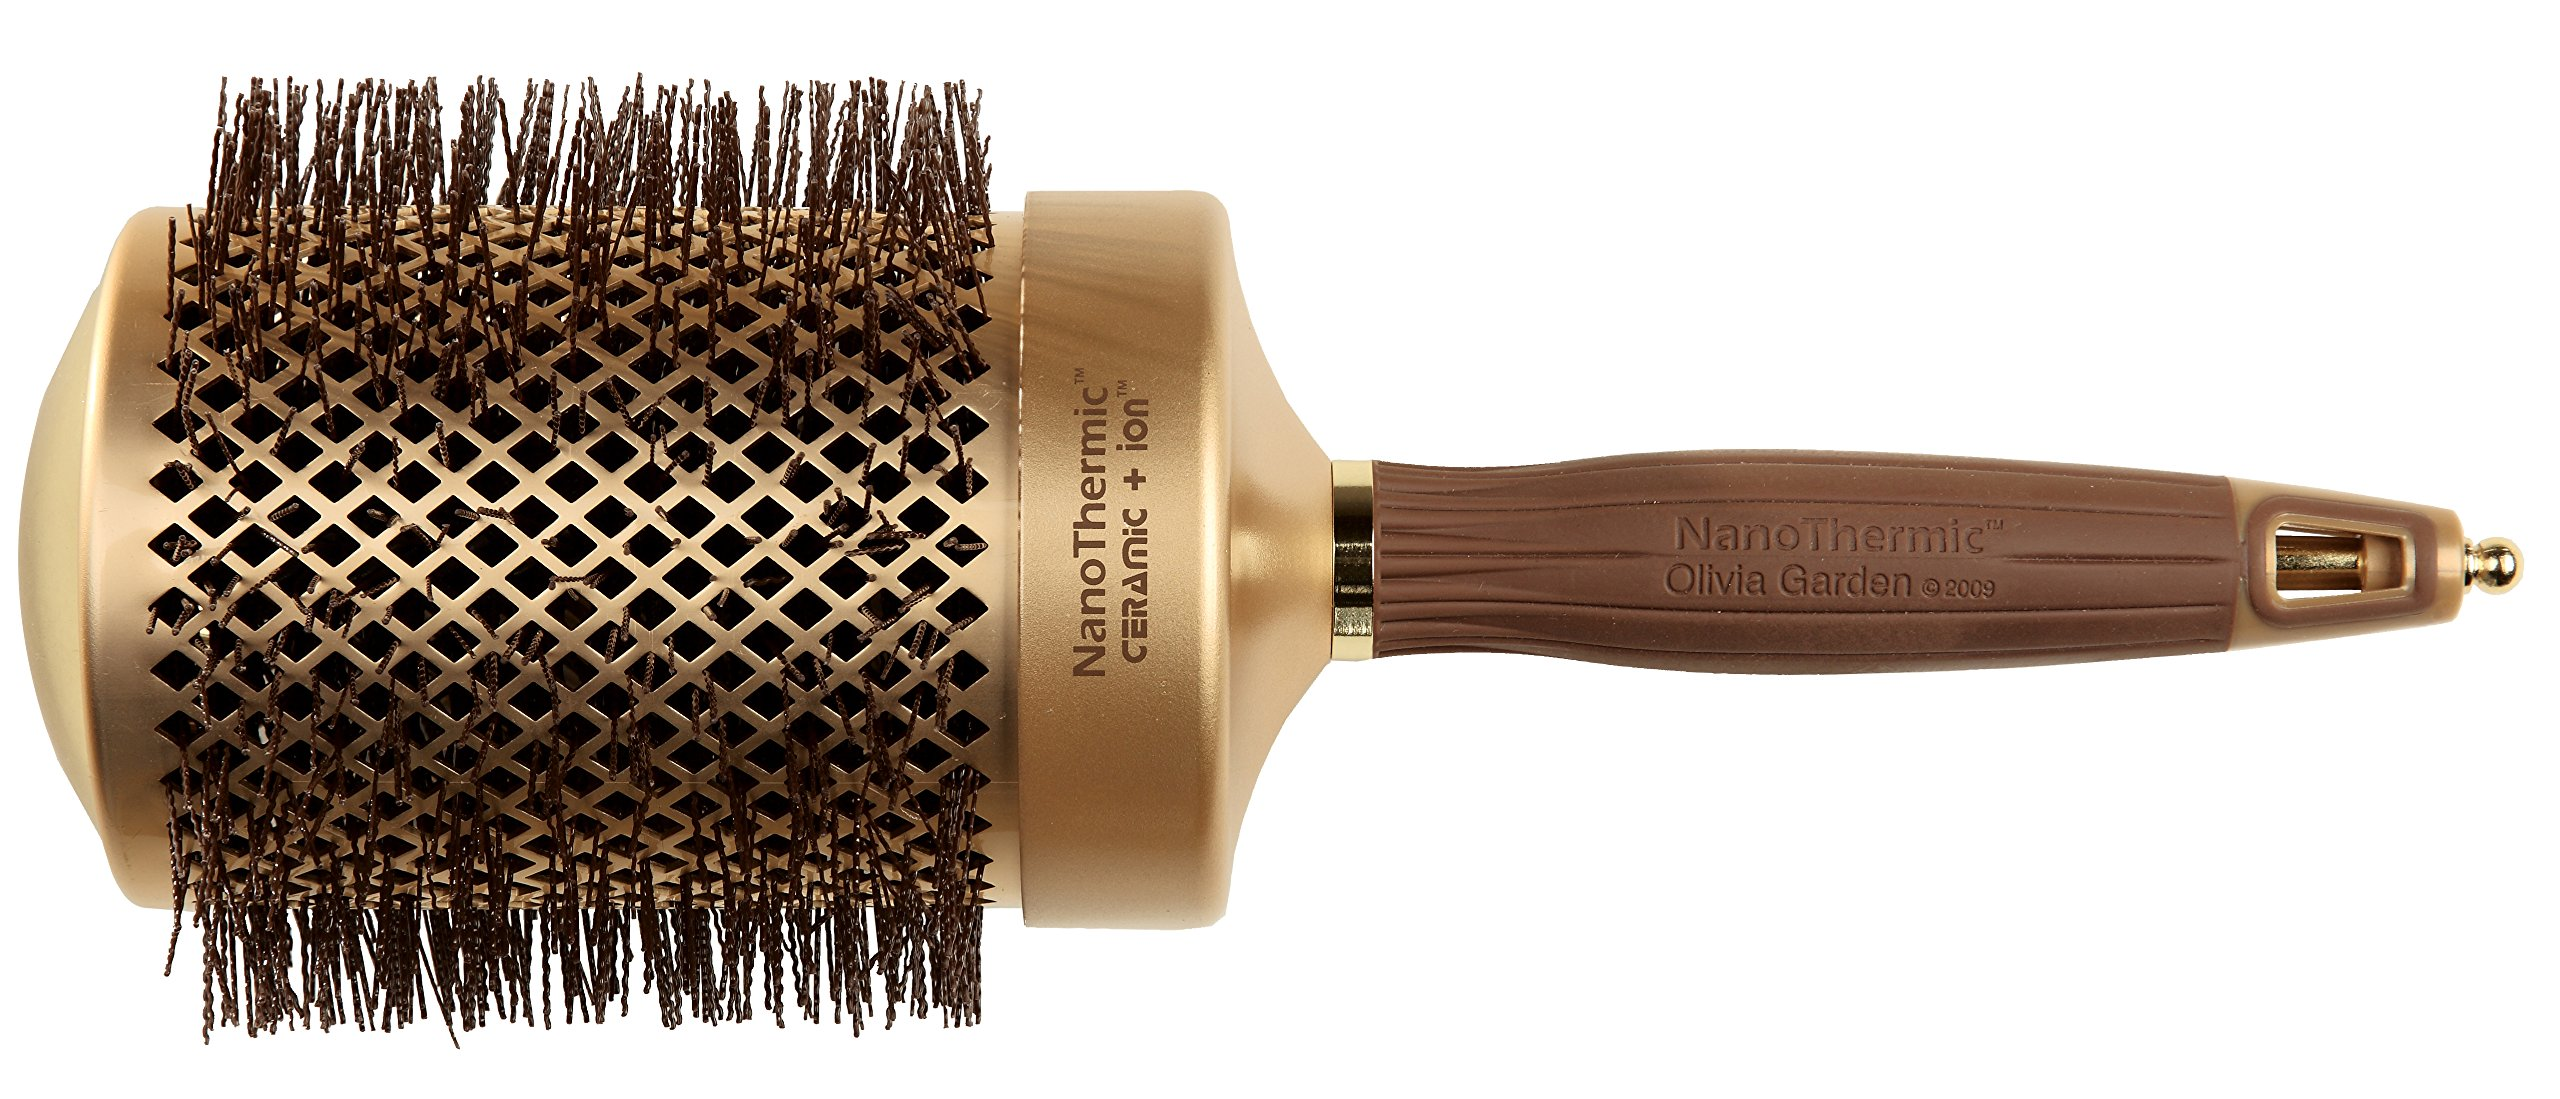 Olivia Garden Nano Thermic Ceramic Ion Brush, 3 1/4 Inch